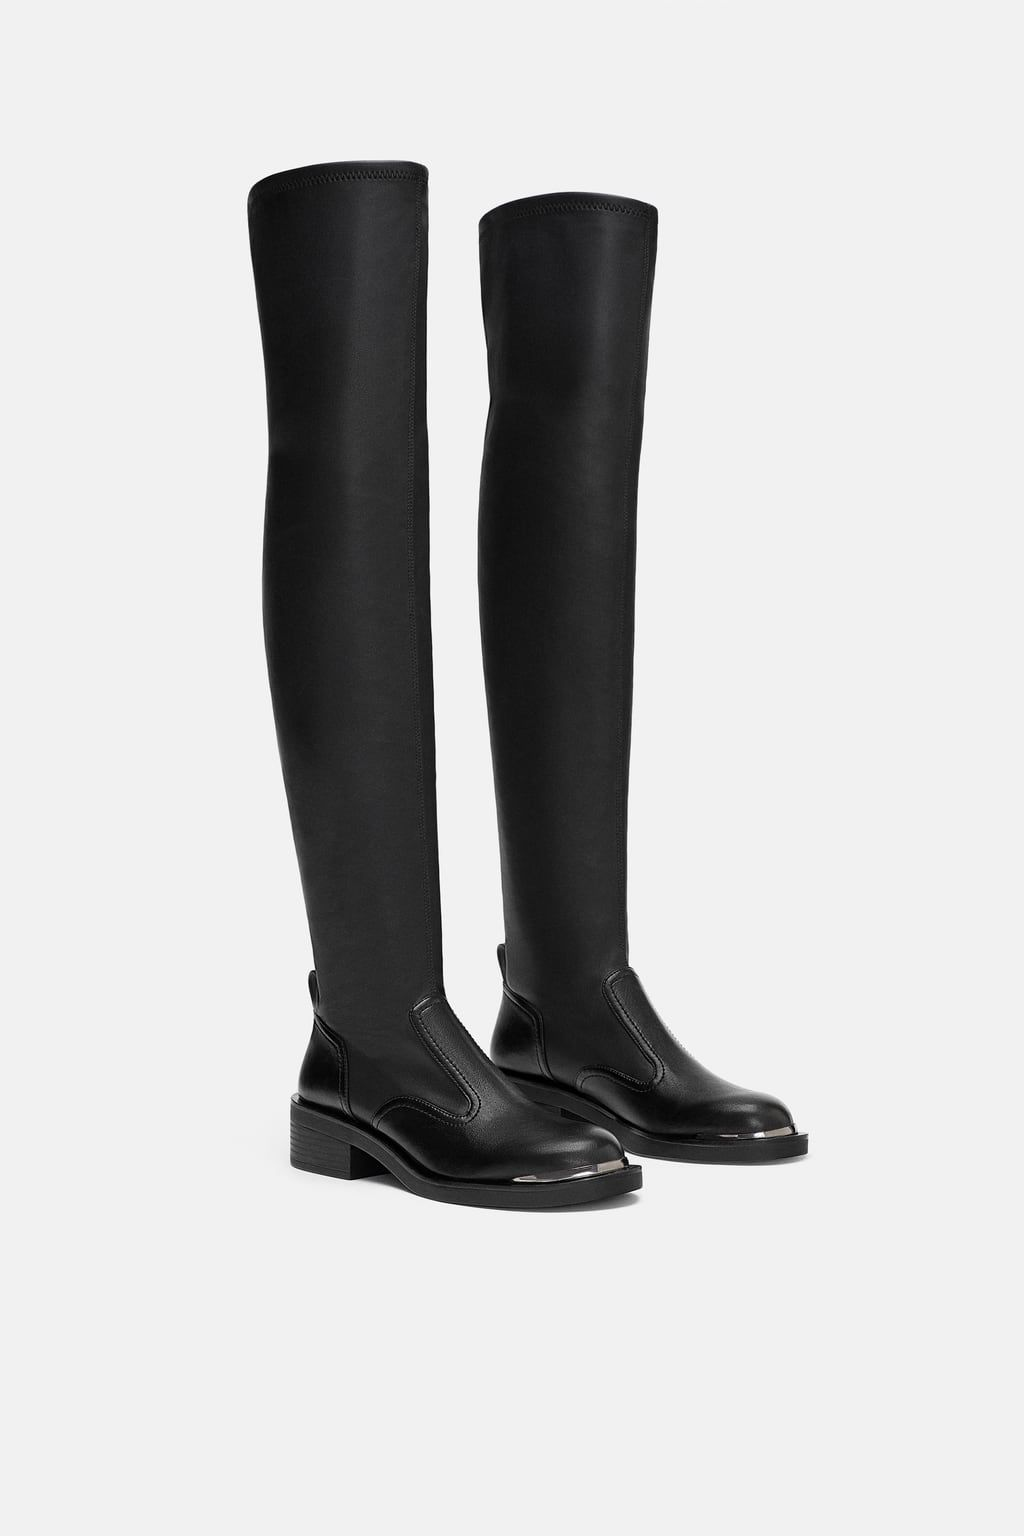 d1e7fd971482 FLAT STRETCH BOOTS DETAILS89.90 USDBLACK - 5050 301Black flat boots. High  stretch leg detail. Pull tab at heel. Round toe. Sole height  1.6 inches  (4cm)